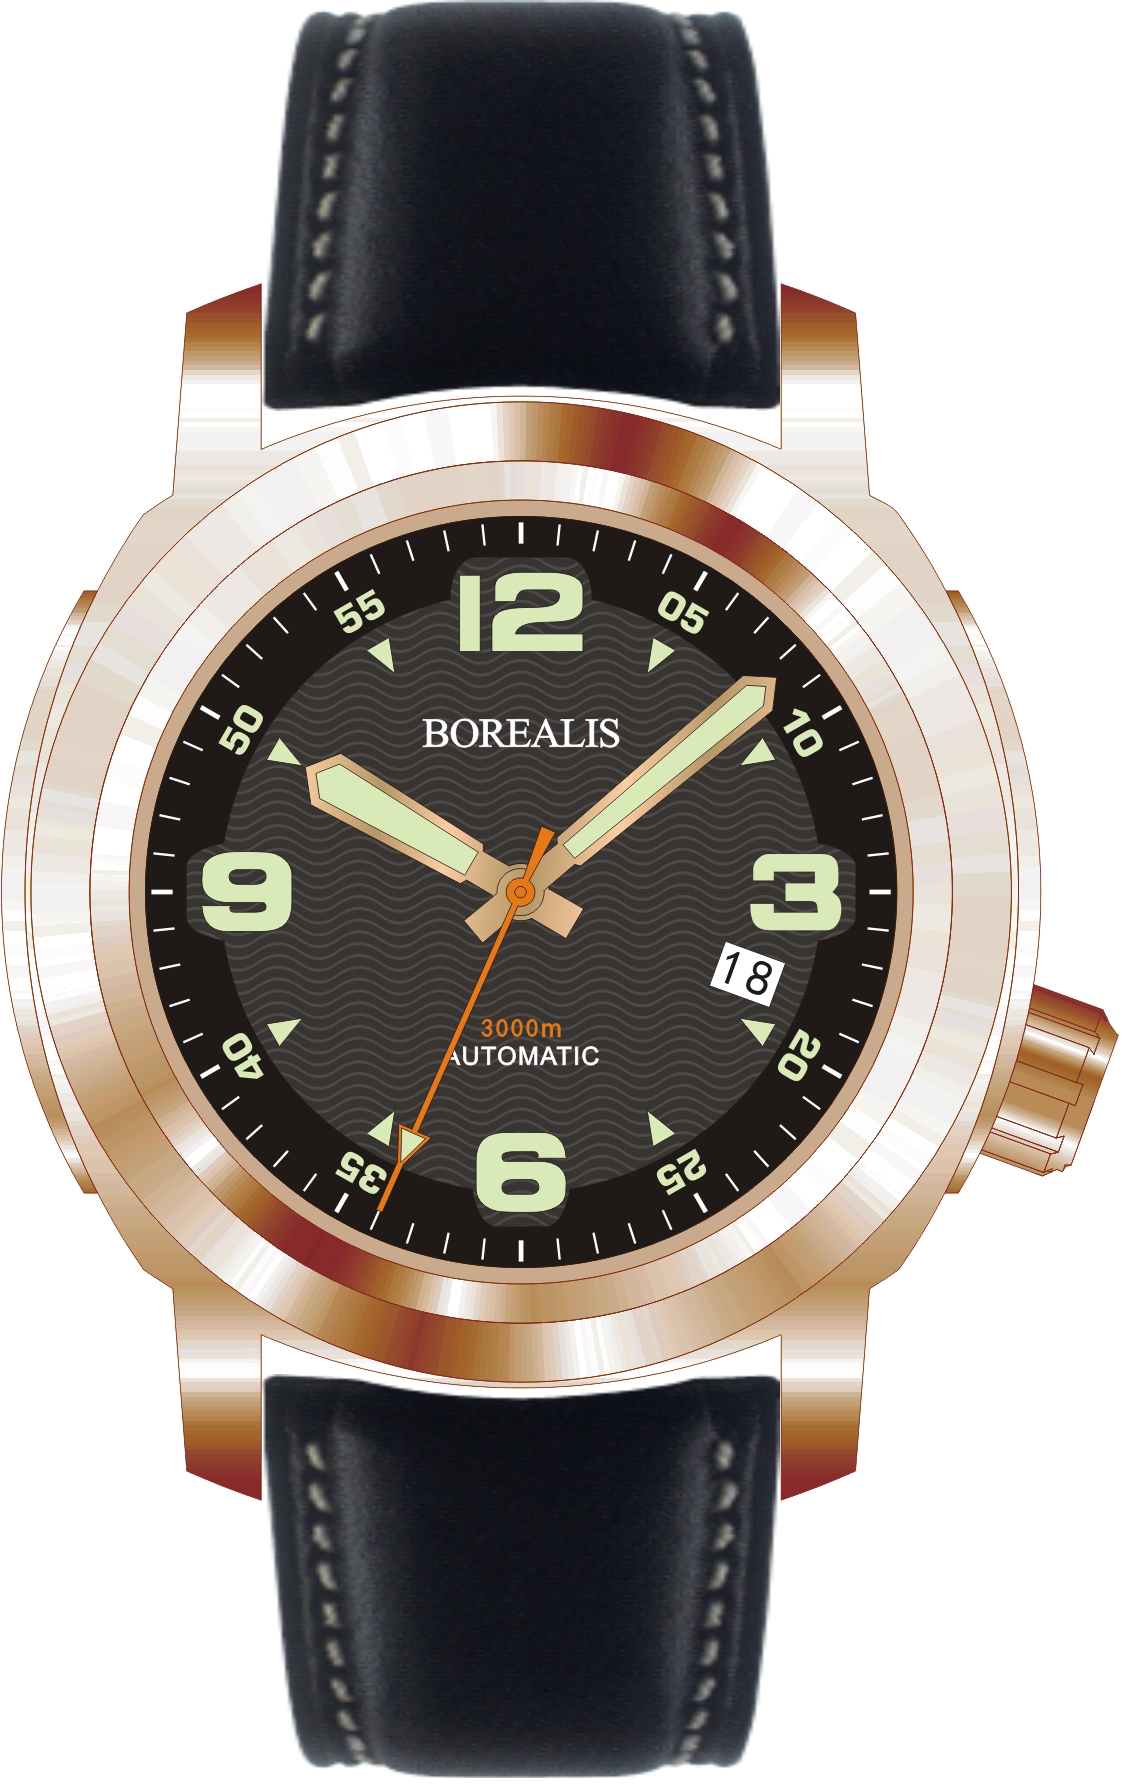 Borealis Batial Bronze CuSn8 Black 3000m Miyota 9015 Automatic Diver Watch With Date Display